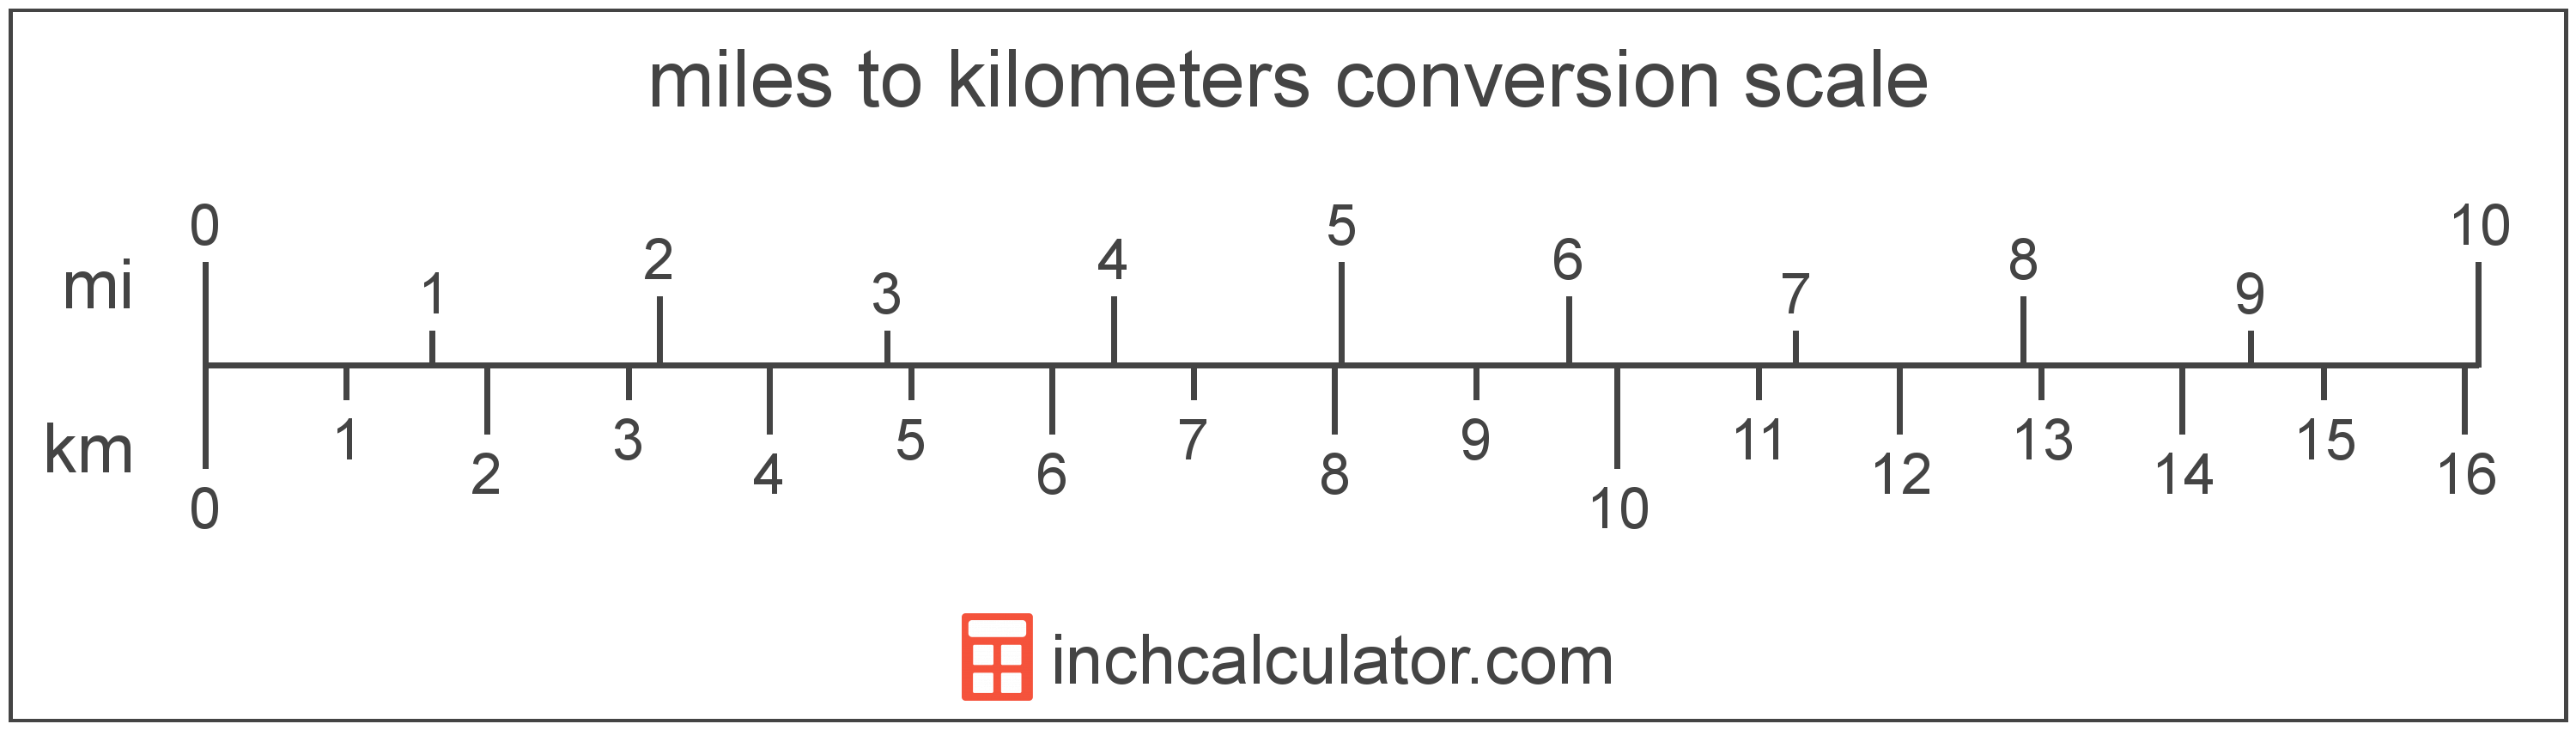 conversion scale showing miles and equivalent kilometers length values